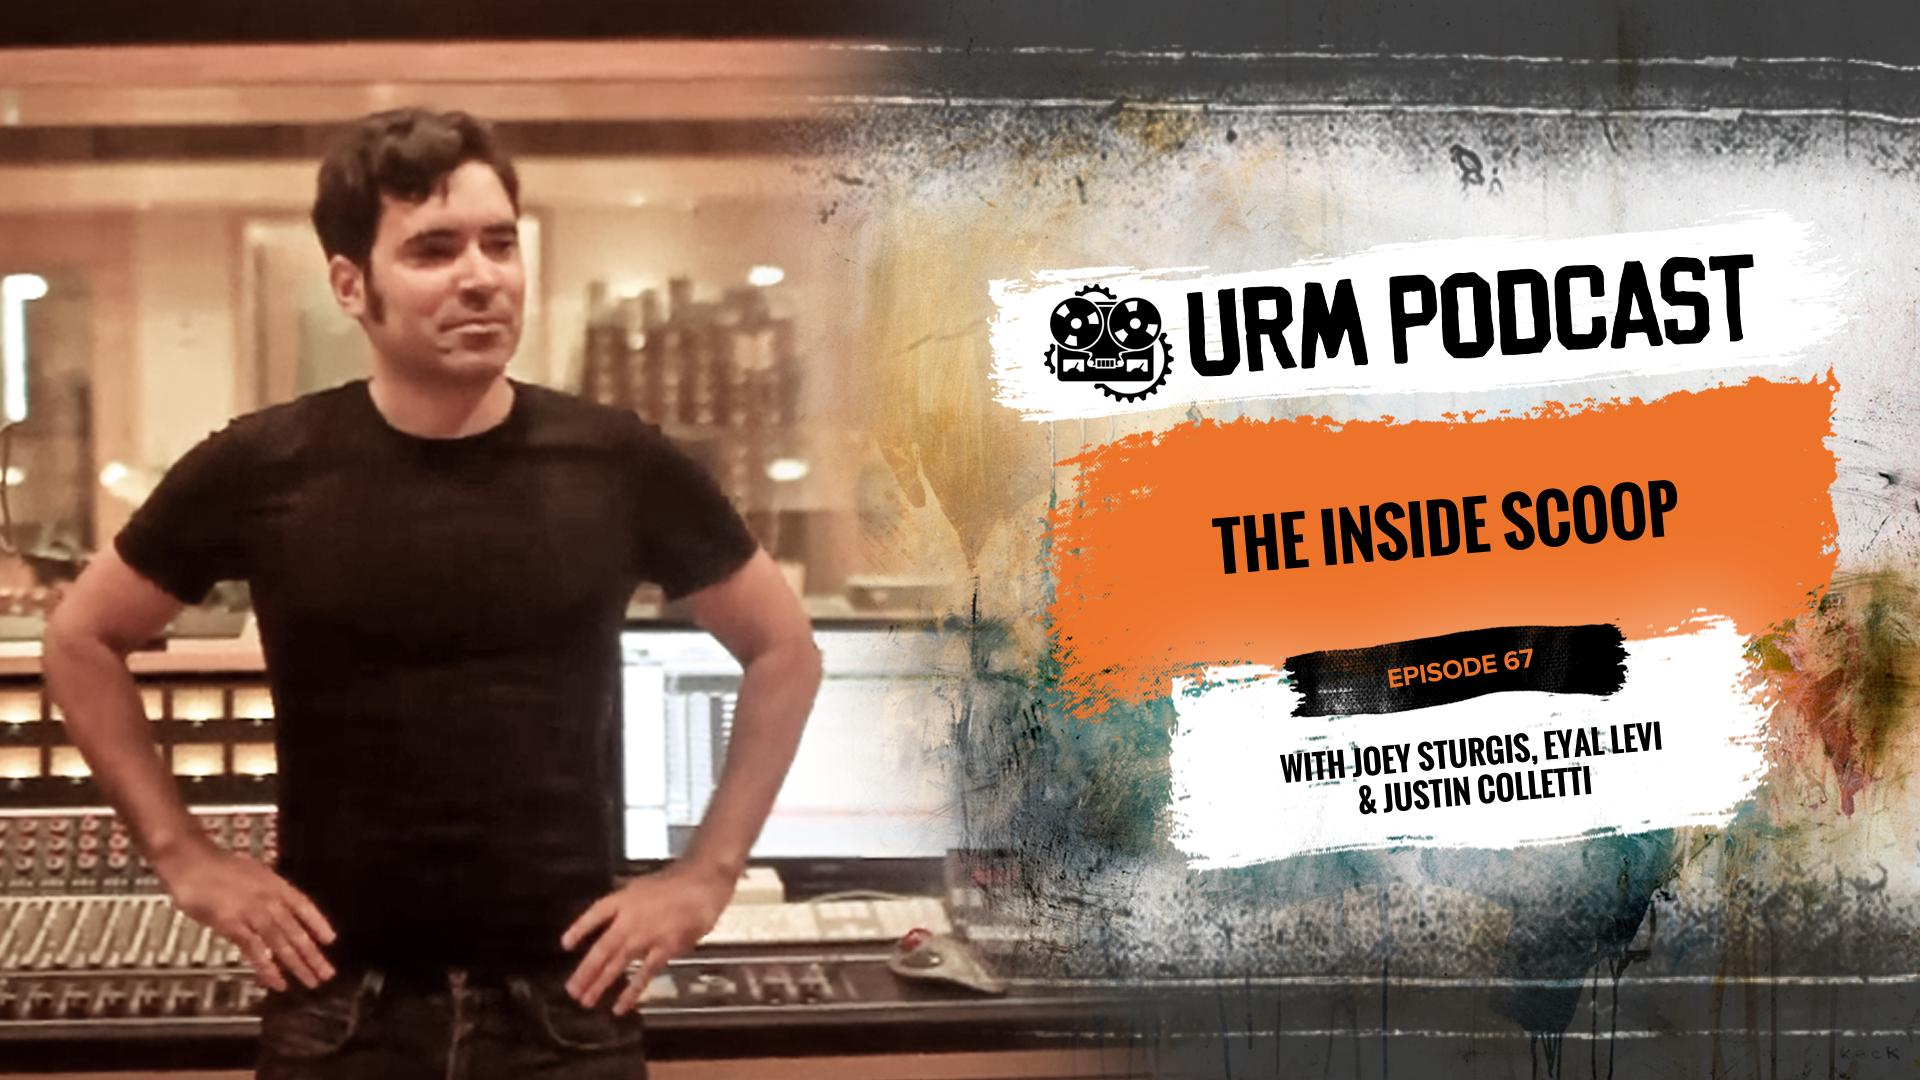 Music Business, Art & Financial Freedom: SonicScoop's Justin Colletti Featured on the URM Podcast